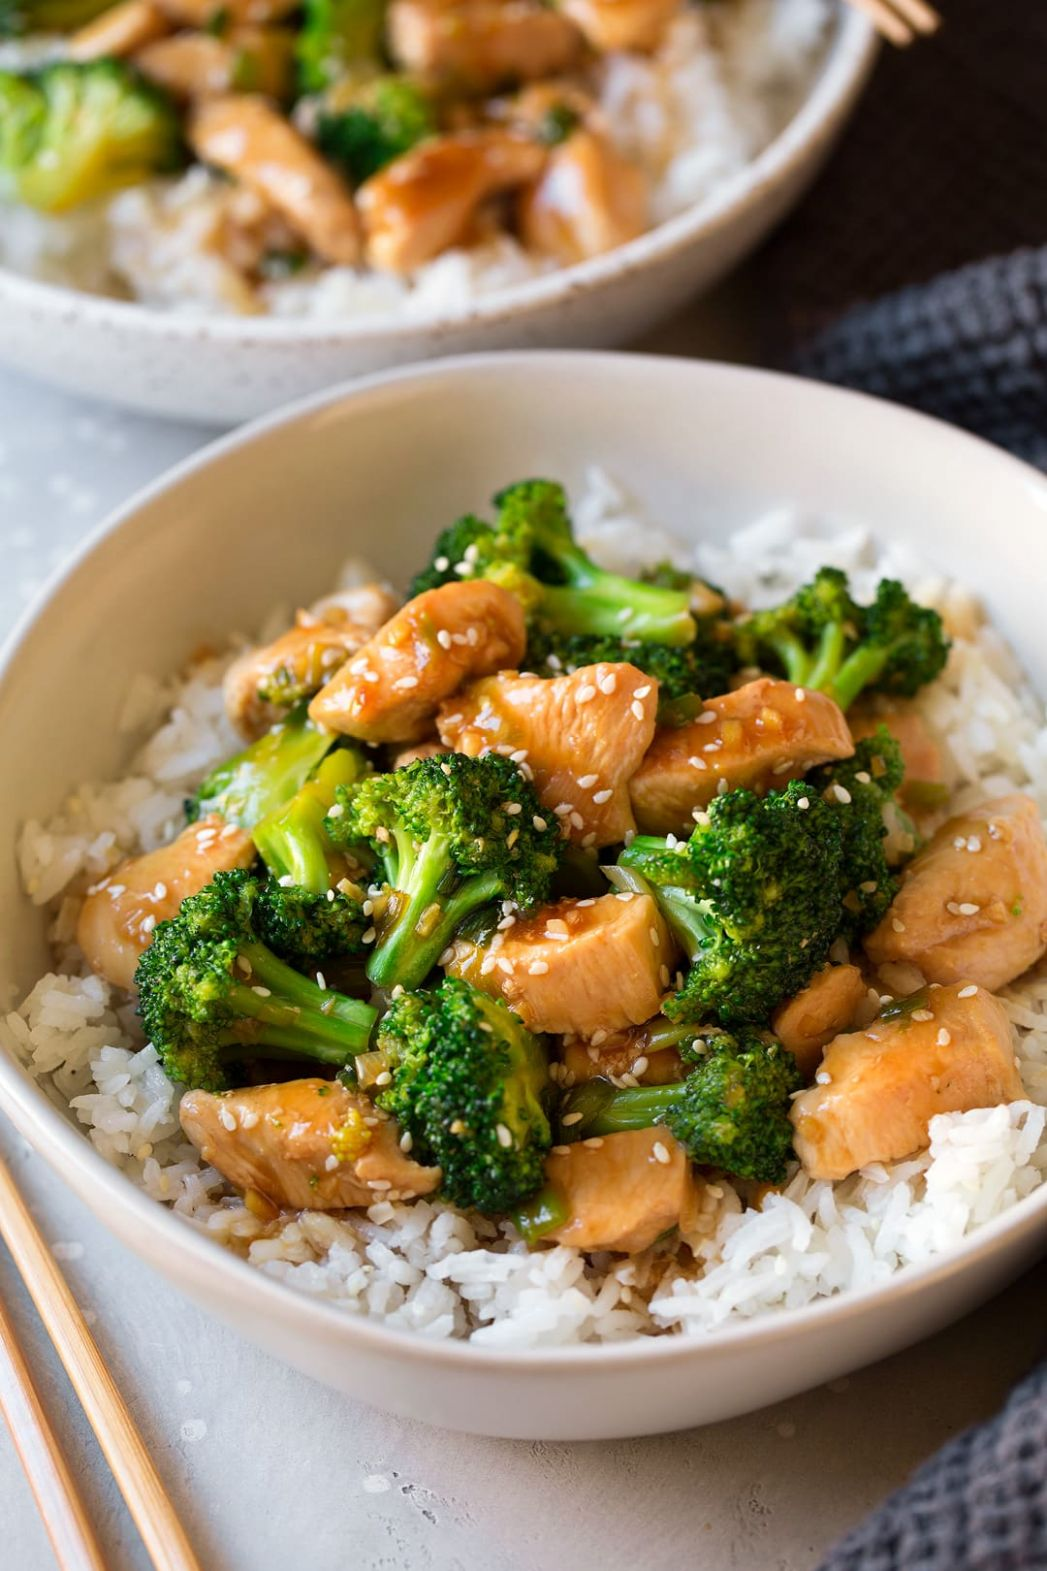 Chicken and Broccoli Stir-Fry - Recipes Chicken Broccoli